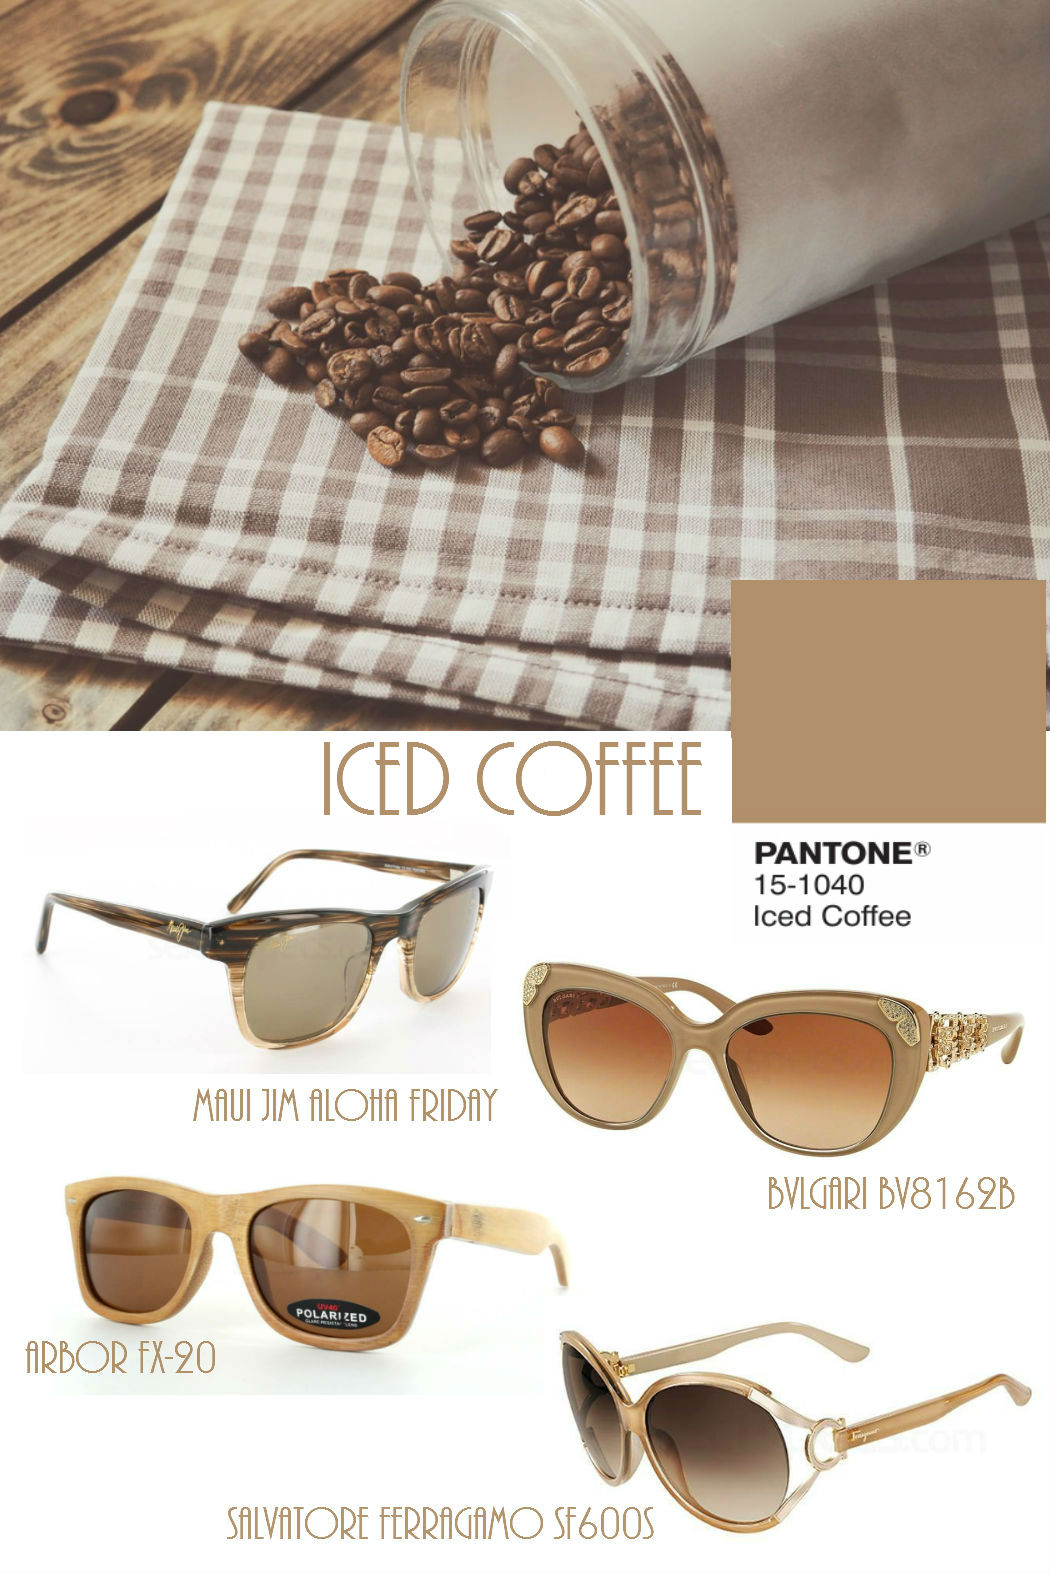 Pantone Iced Coffee sunglasses